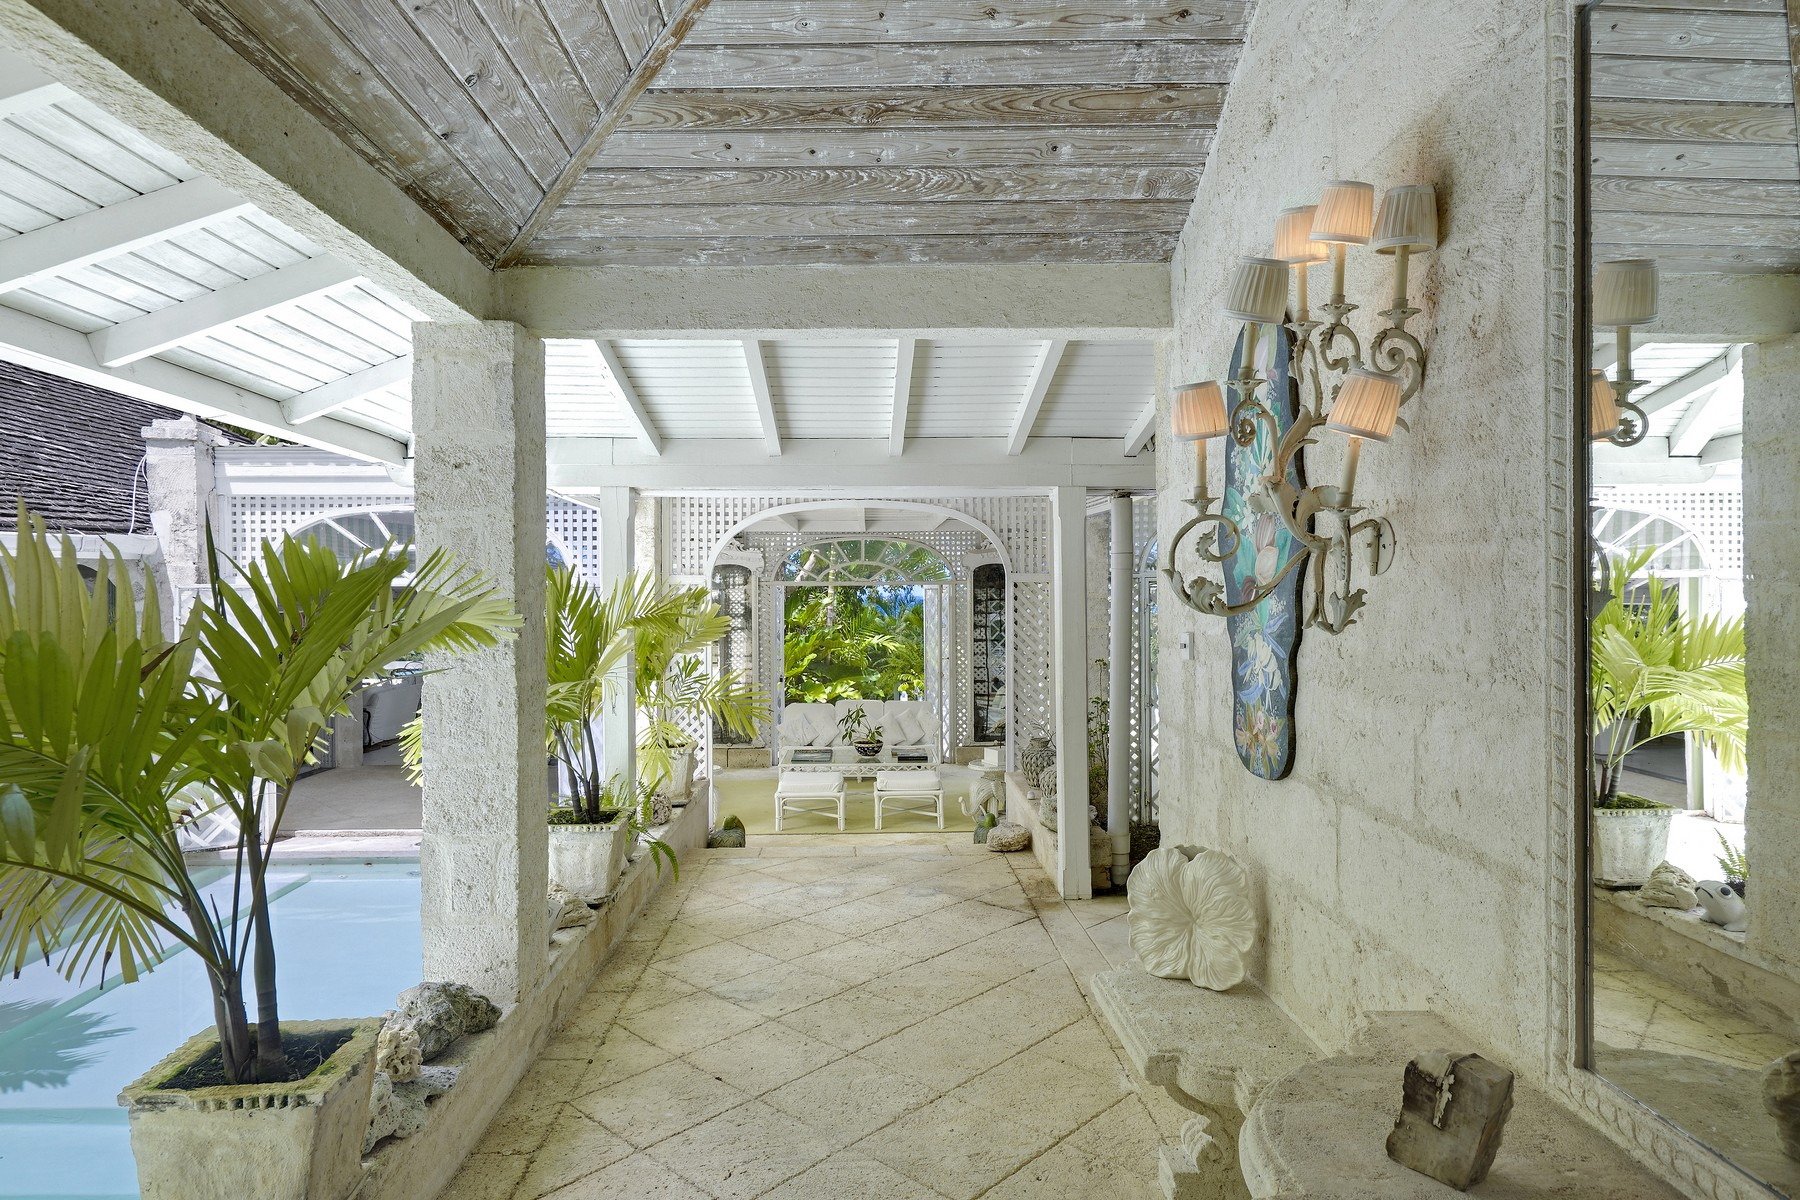 Altro tipo di proprietà per Vendita alle ore Good Hope Sandy Lane, Saint James Barbados